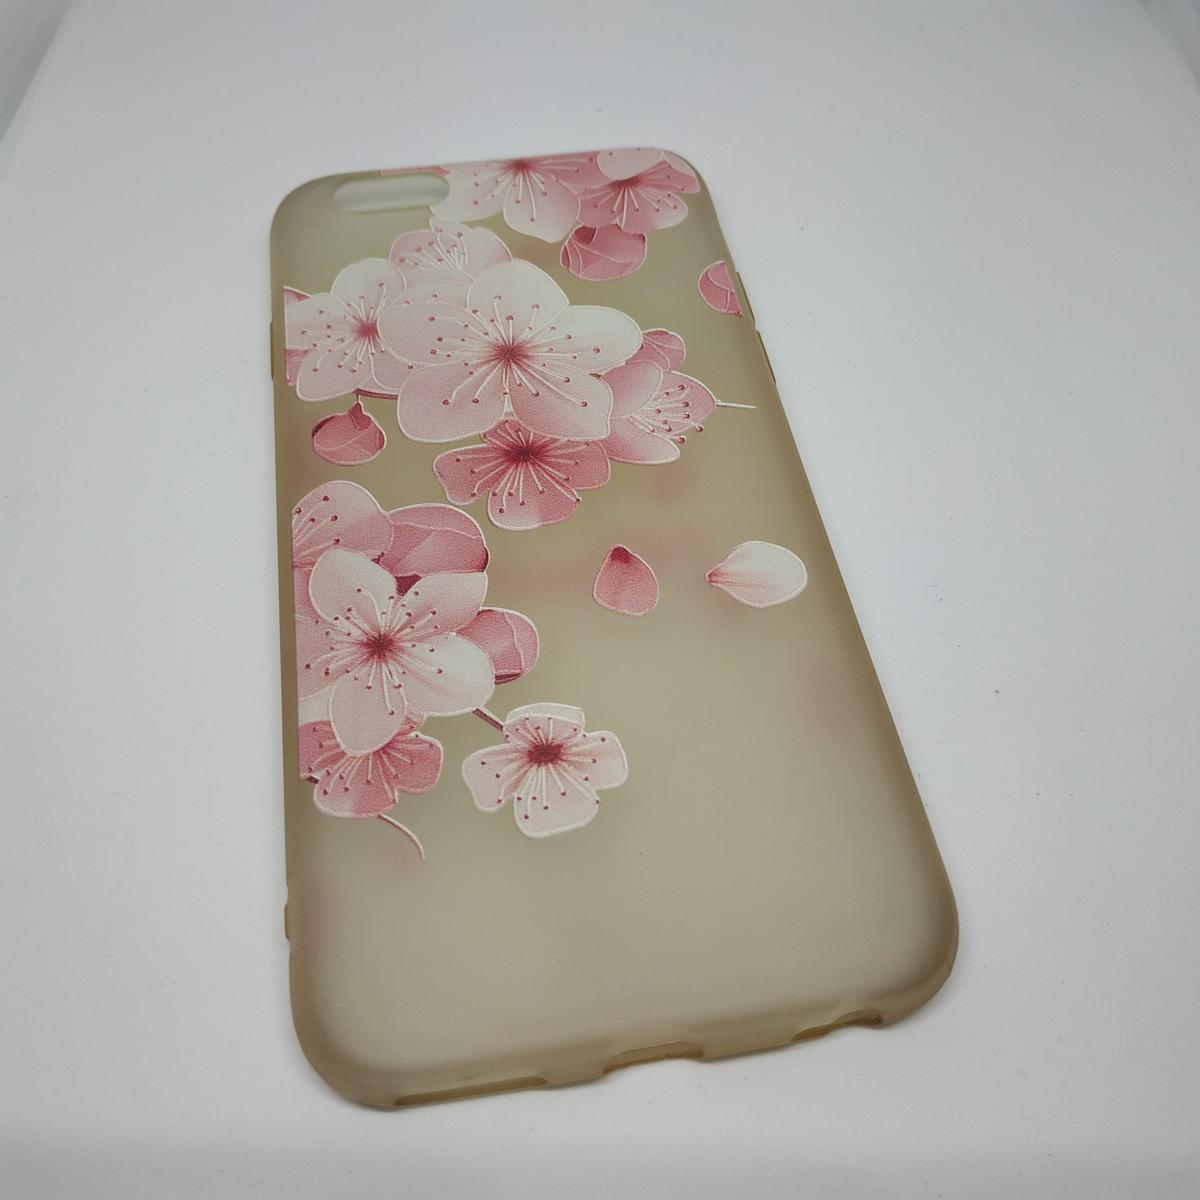 Cover Iphone 66s In 00169 Roma For 300 For Sale Shpock